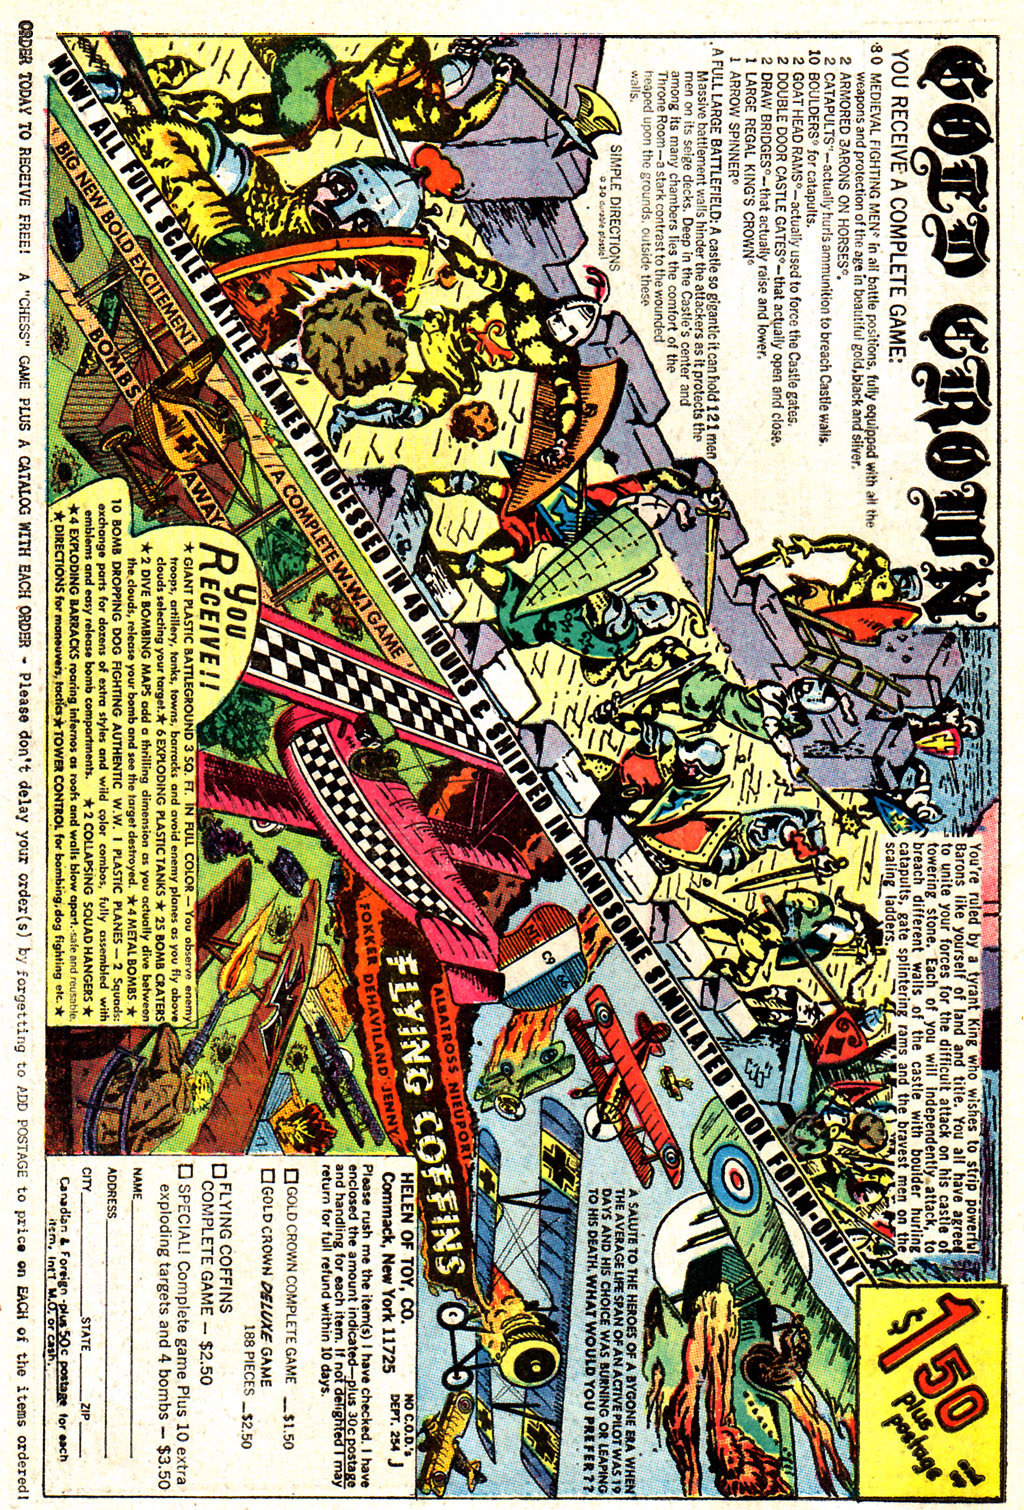 Read online All-Star Western (1970) comic -  Issue #7 - 50